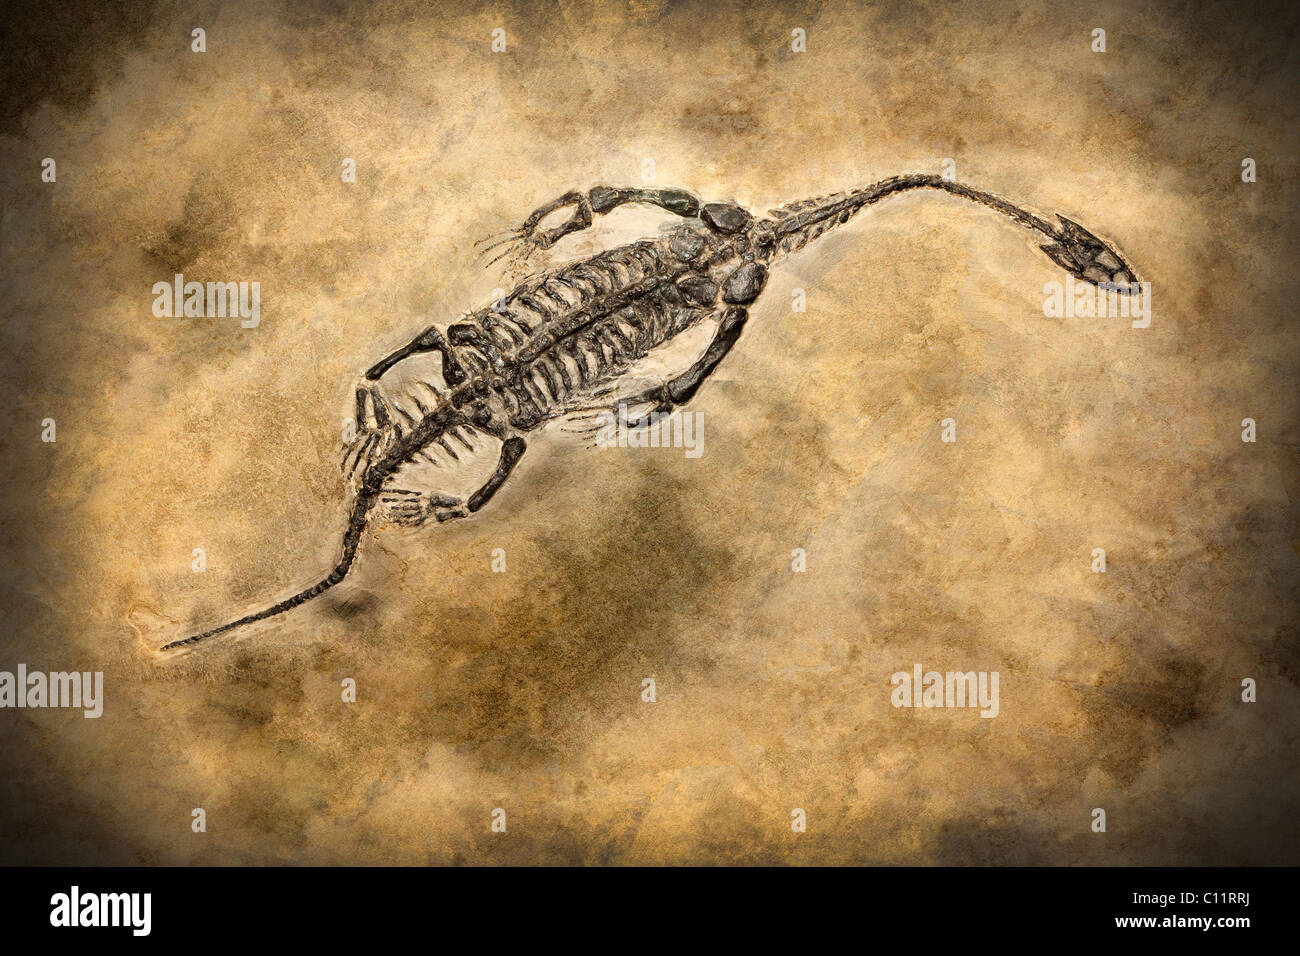 View of a dinosaur fossil. - Stock Image